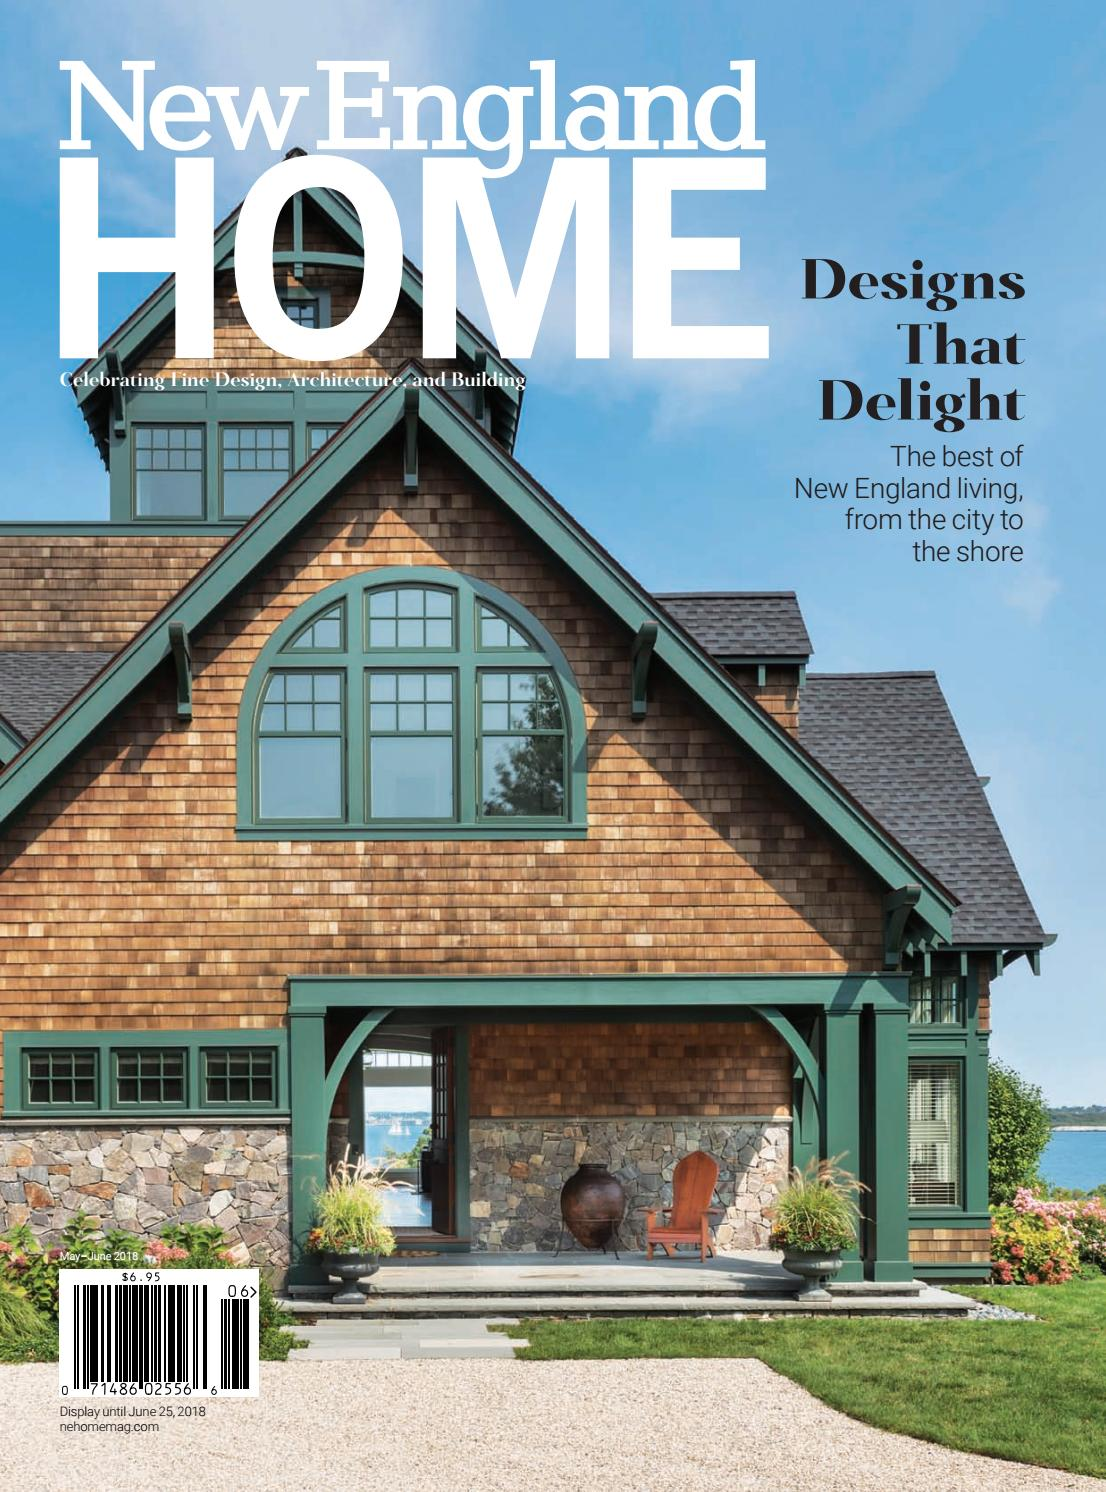 ranch home remodel annie selke ranch house makeover home redesign New England Home May - June 2018 by New England Home Magazine LLC - issuu